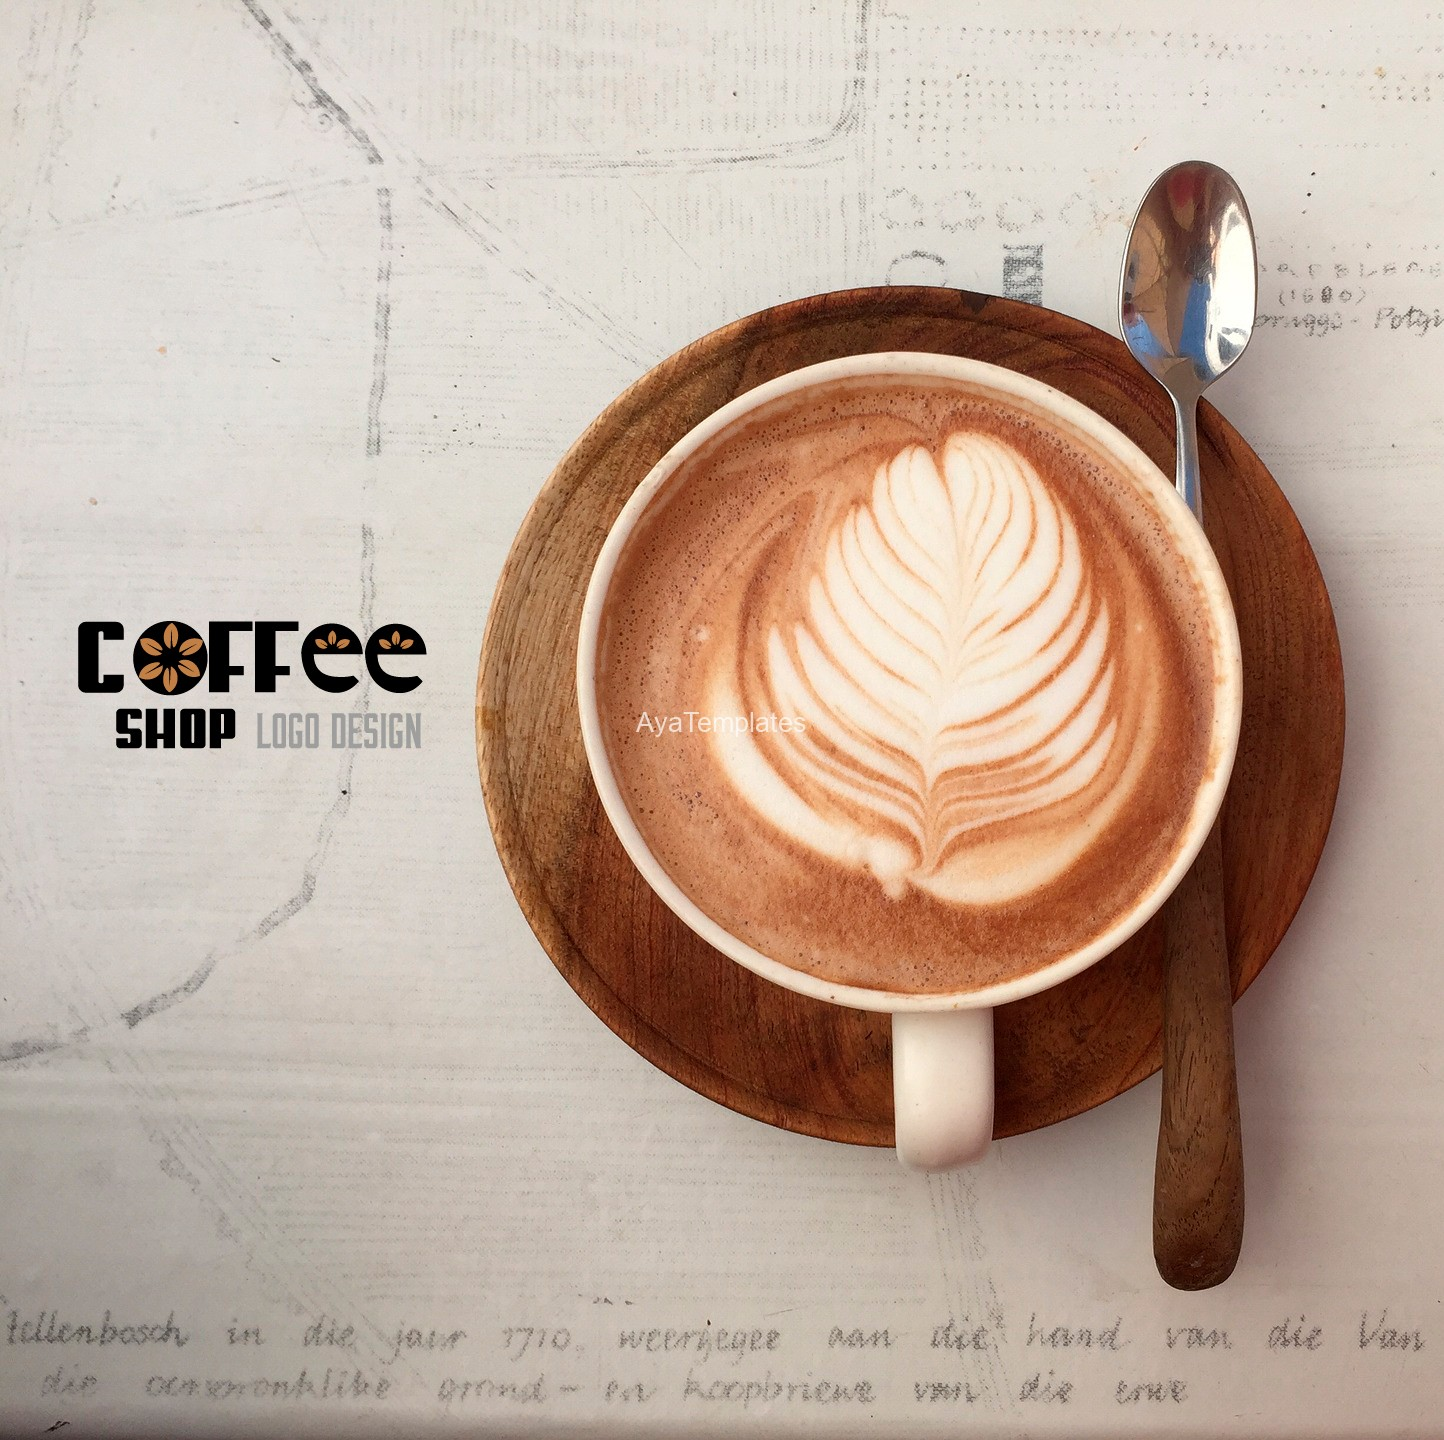 coffe-shop-logo-design-branding-1